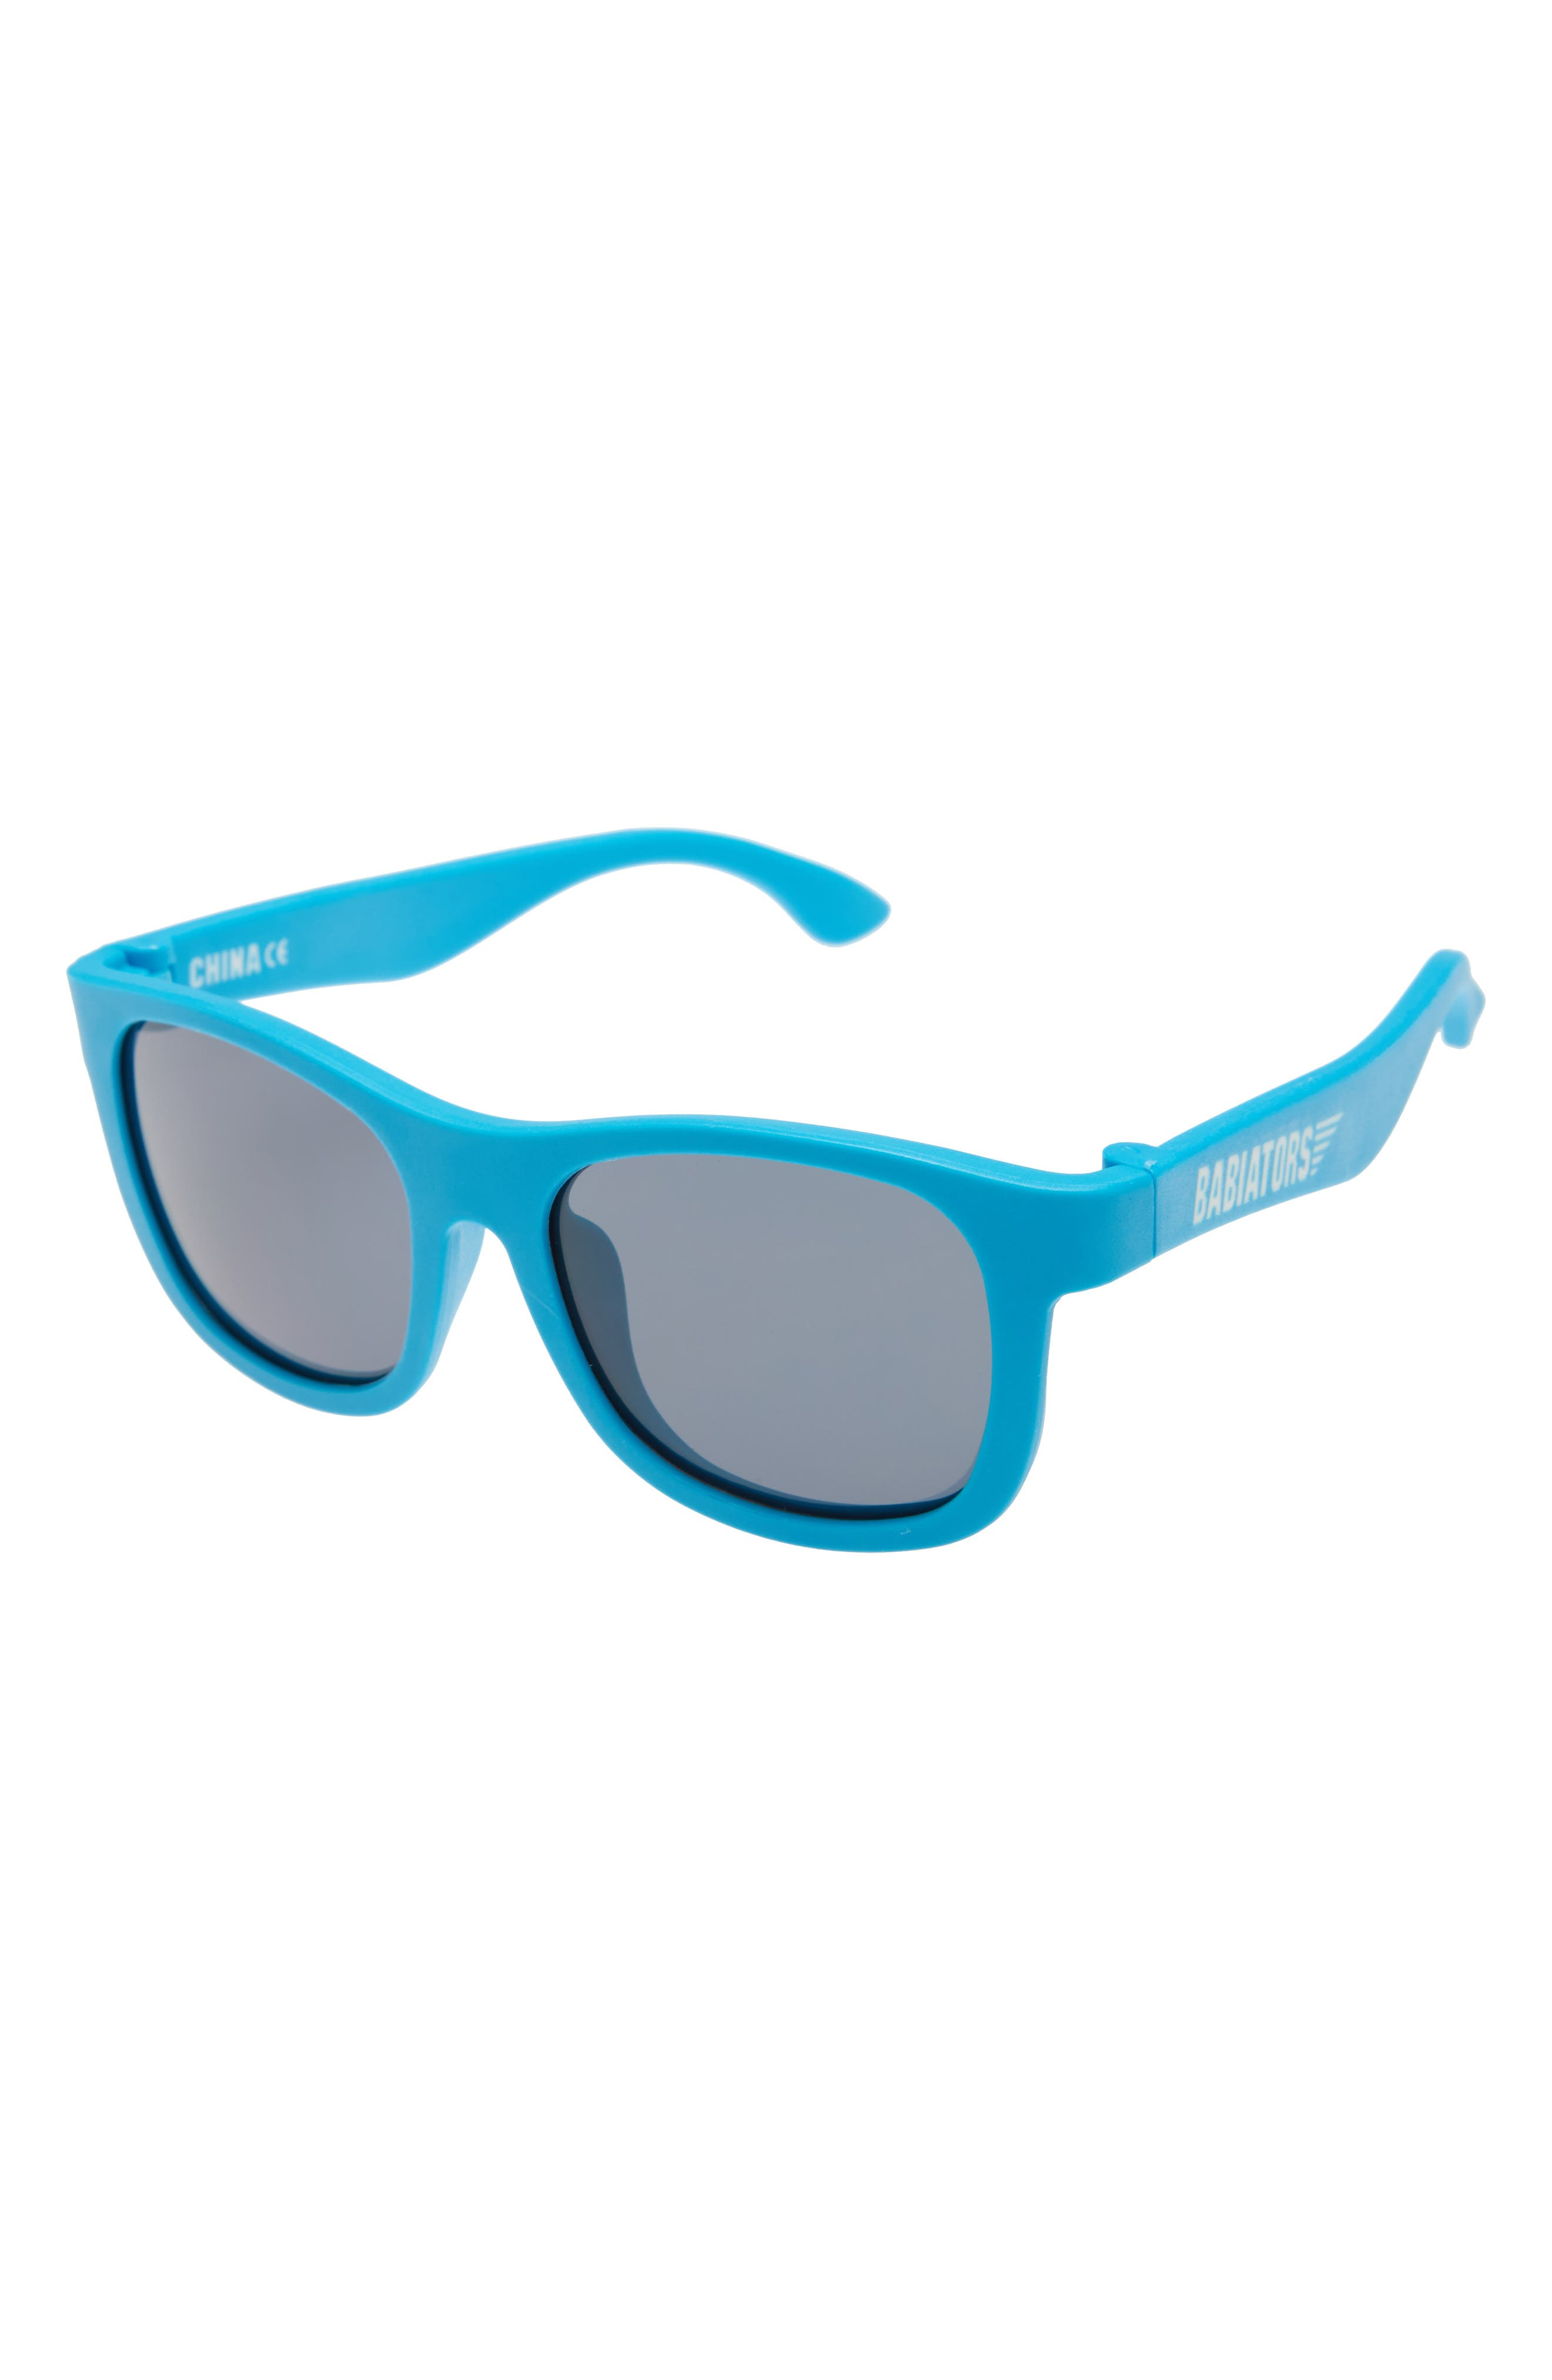 Original Navigators Sunglasses,                             Main thumbnail 1, color,                             BLUE CRUSH